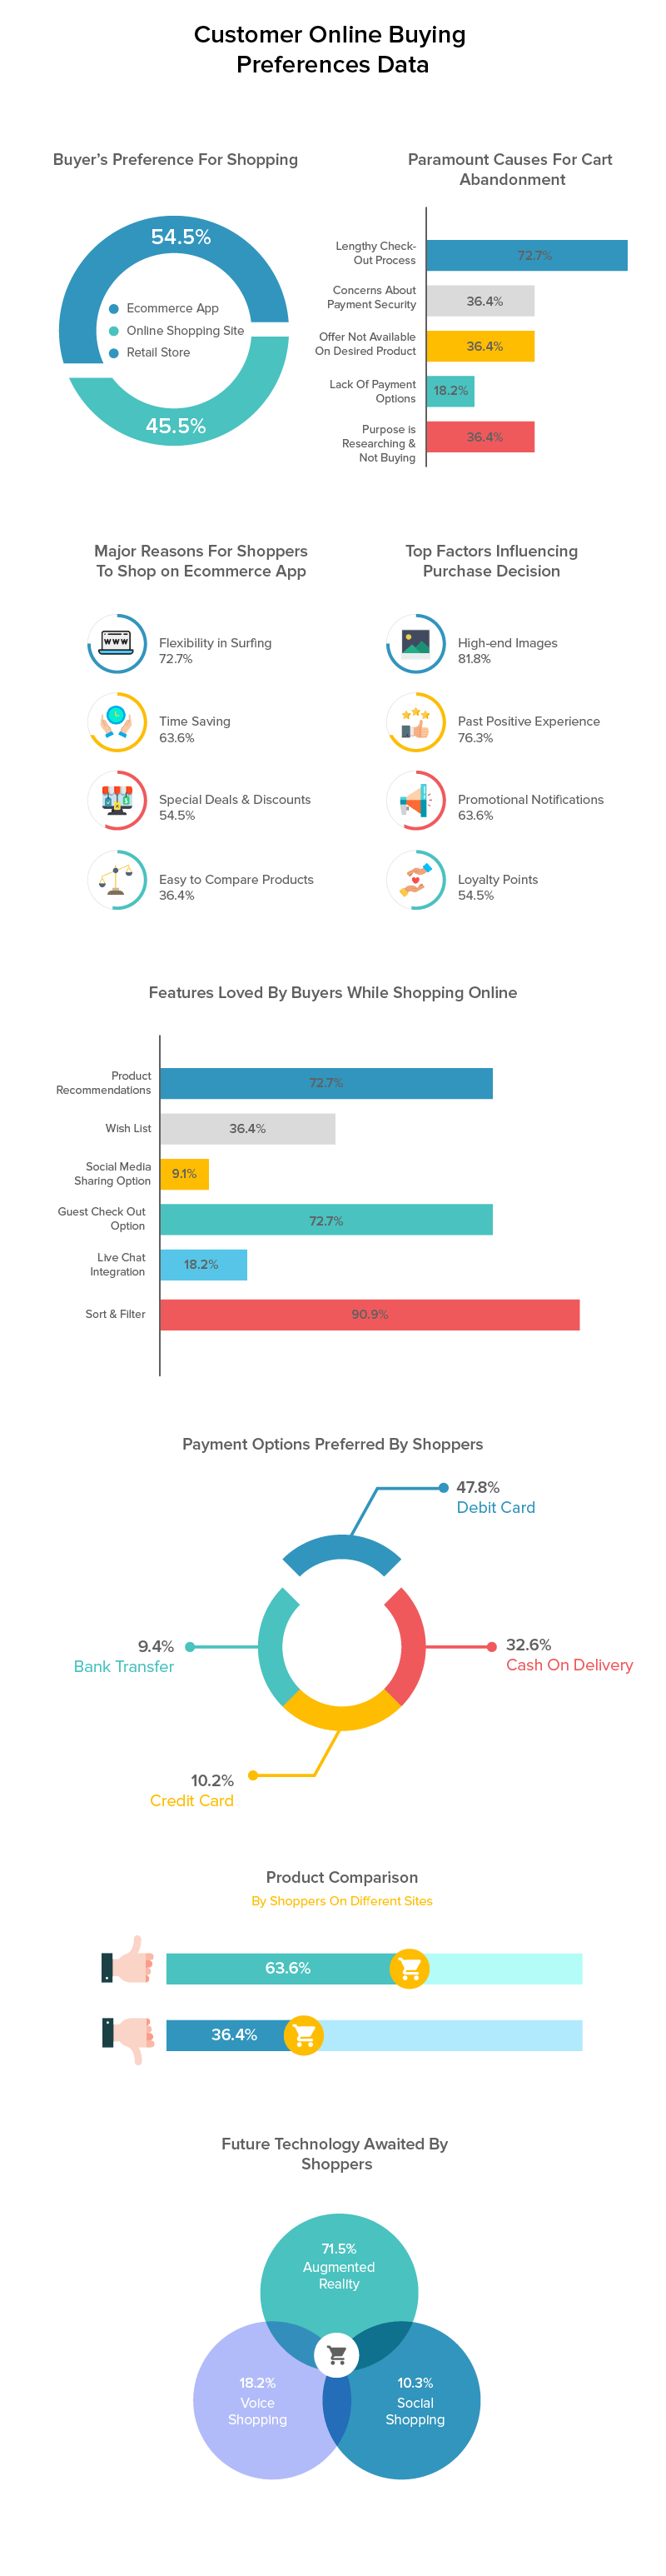 Customer Online Buying Preferences Data